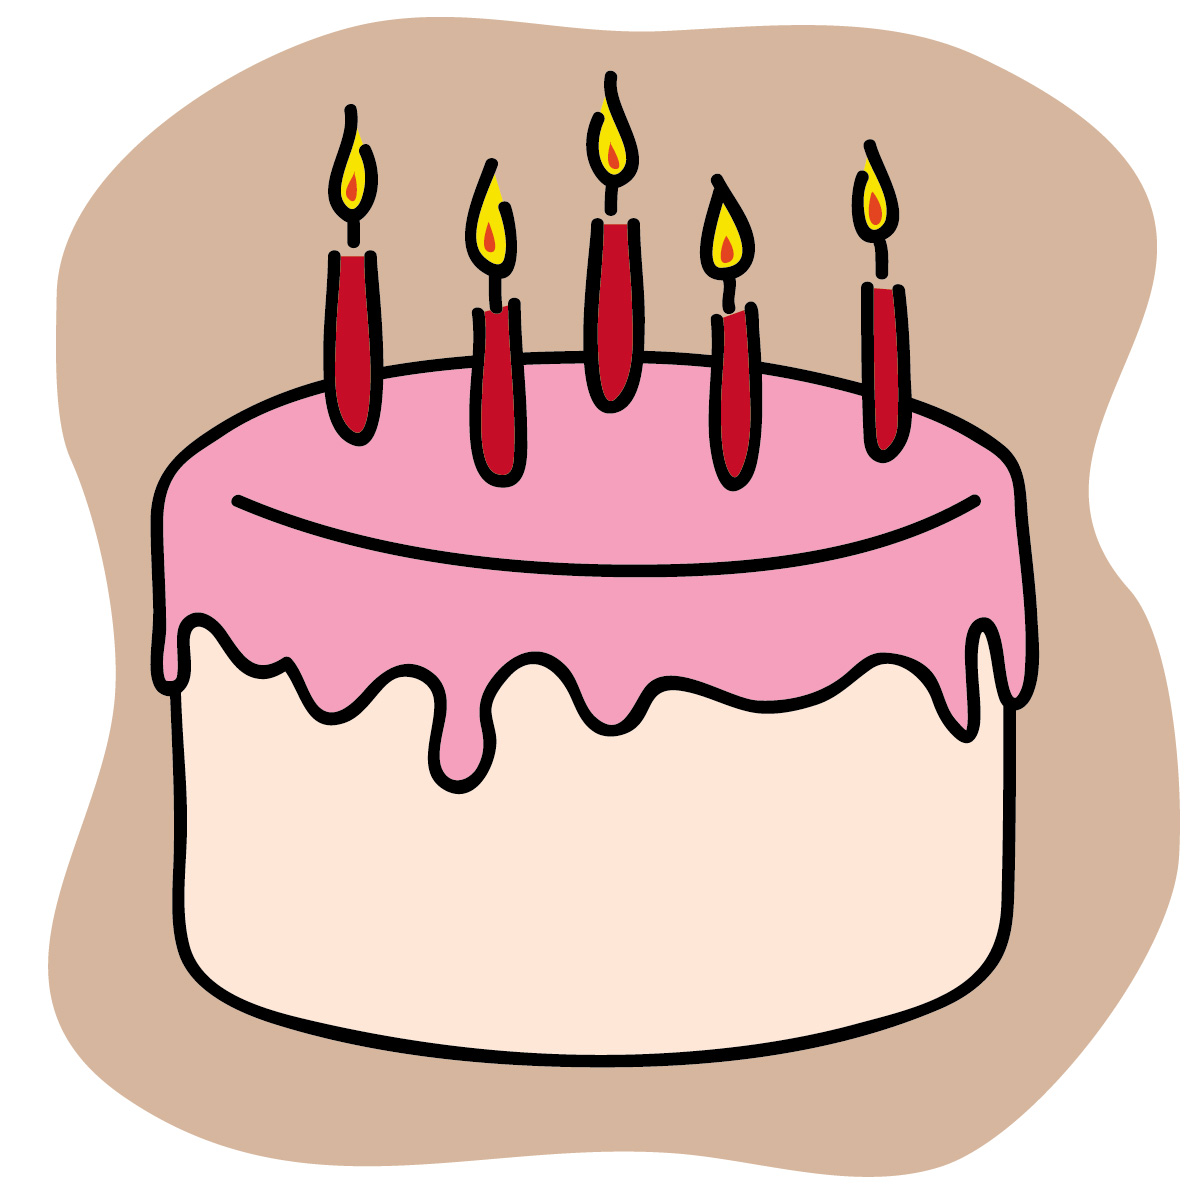 1200x1200 Happy Birthday Cake With Name Edit For Facebook Clip Art